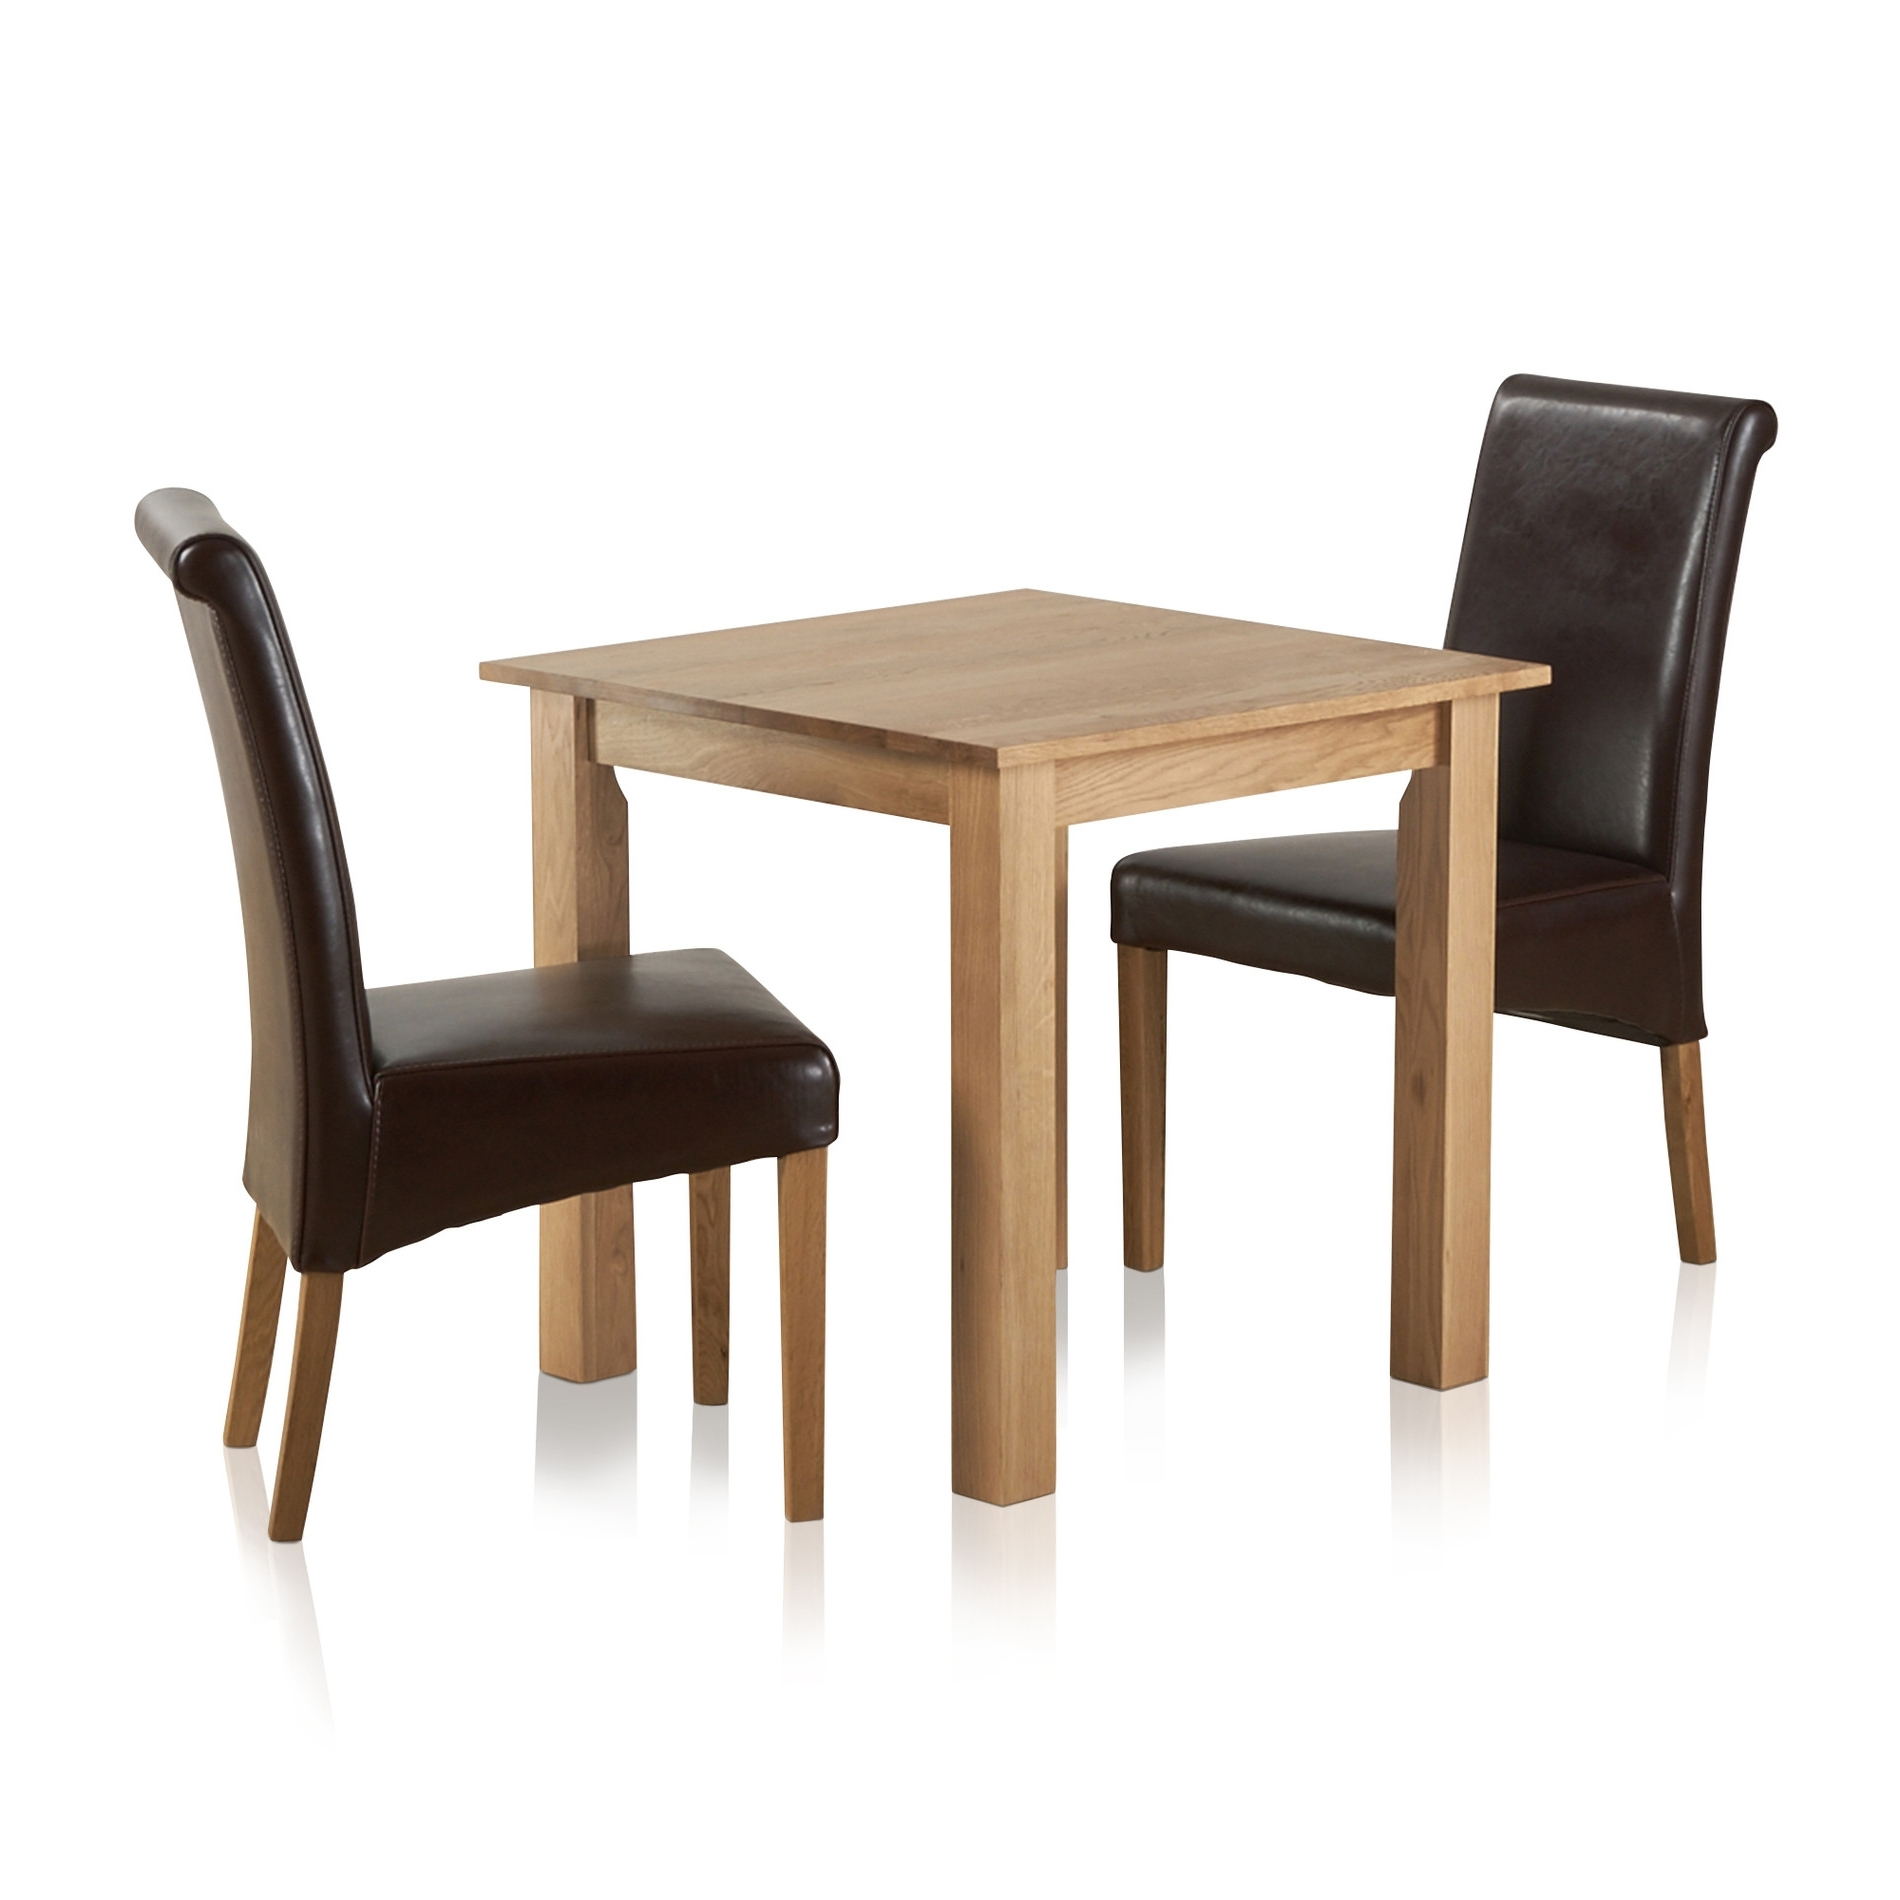 Hudson Dining Tables And Chairs In Most Recent Hudson Dining Set In Natural Oak – Table + 2 Leather Chairs (Gallery 2 of 25)